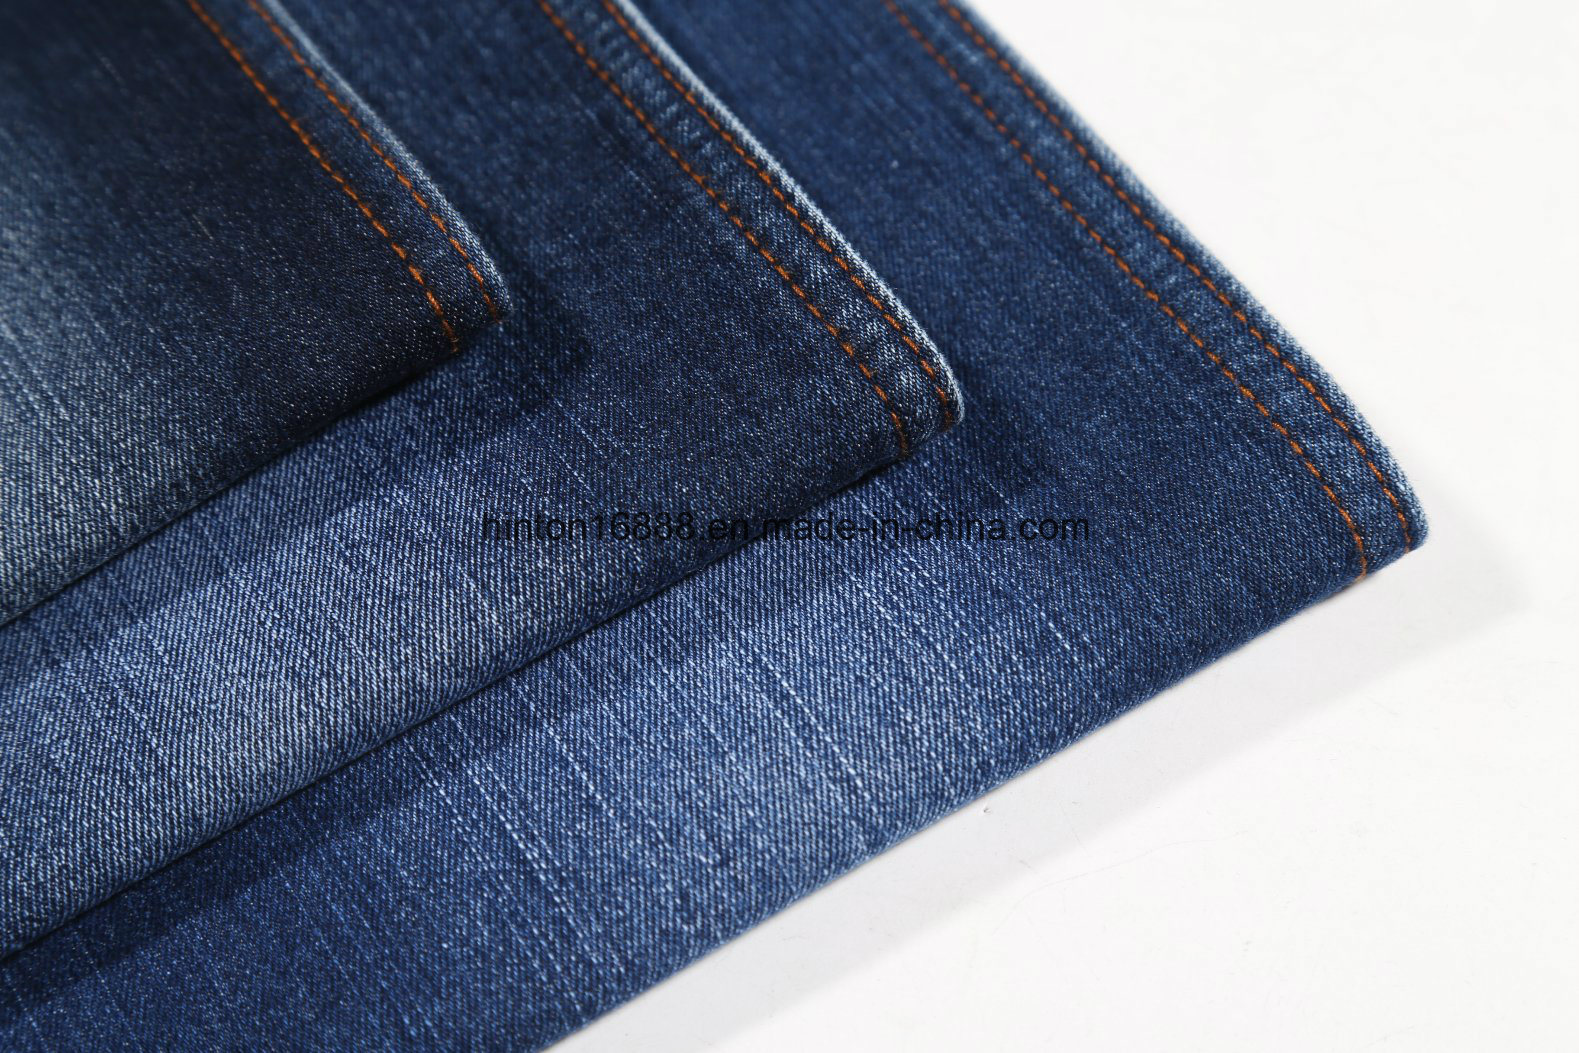 10oz 75%Cotton 23%Polyster 2%Spandex Women Denim Jeans Price Wholesale China